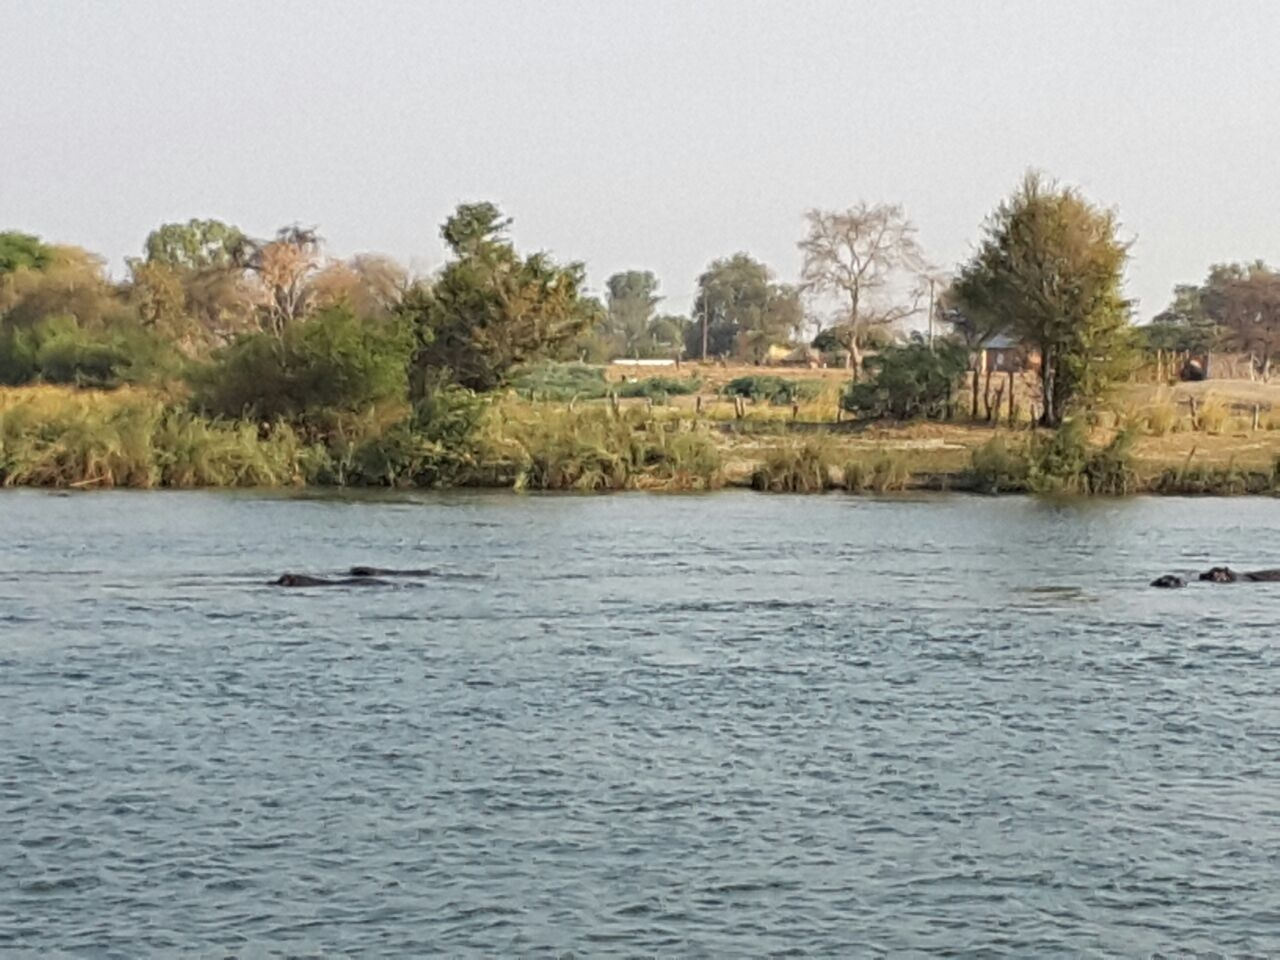 Hippos peeking at our boat as we drifted by.